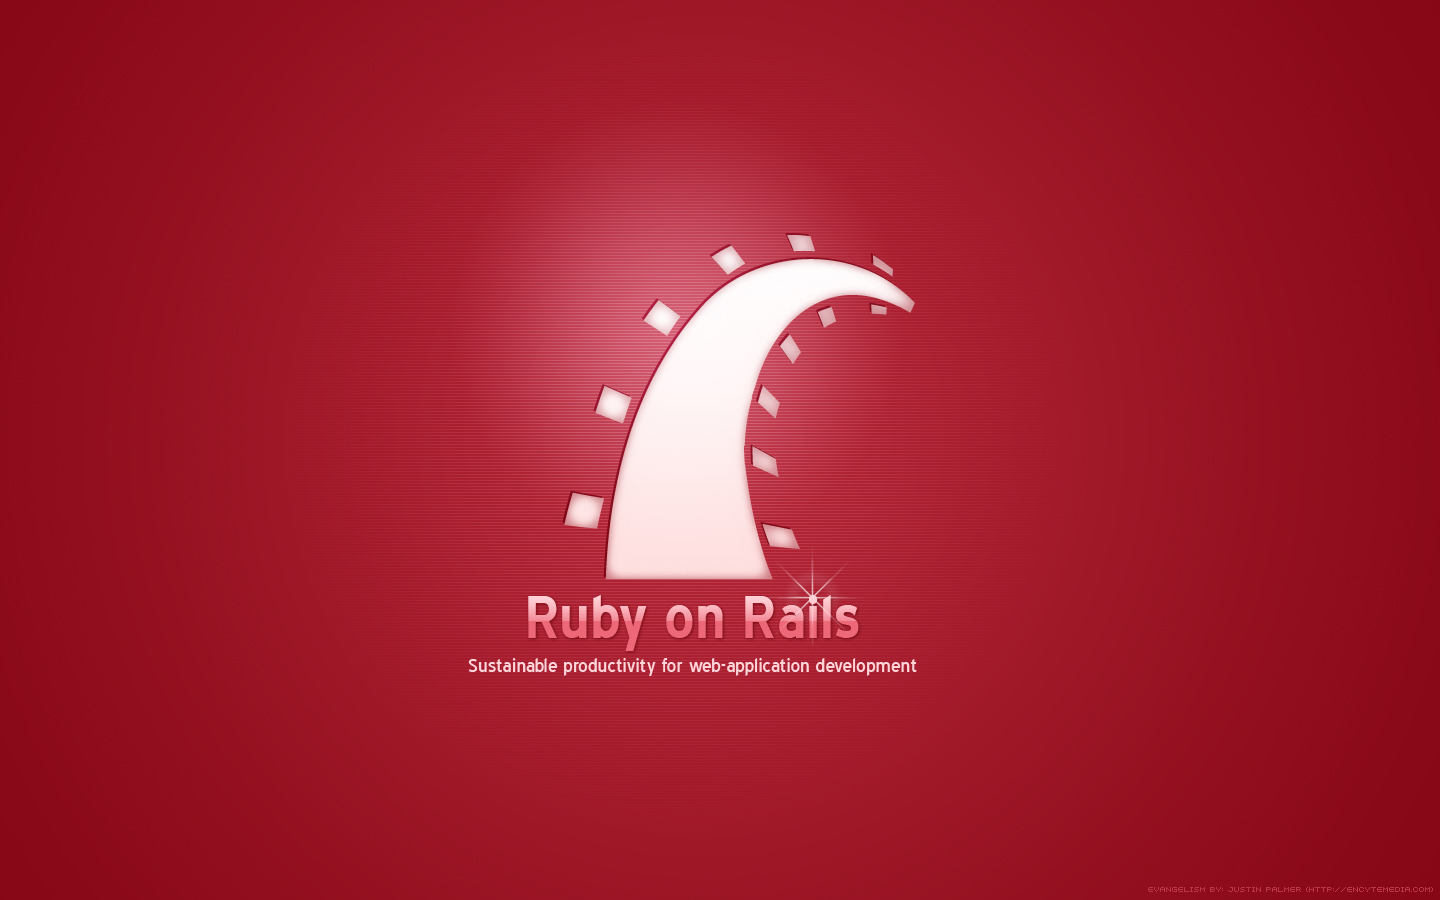 Leasing Ruby On Rails Team Is Better Than Hiring One